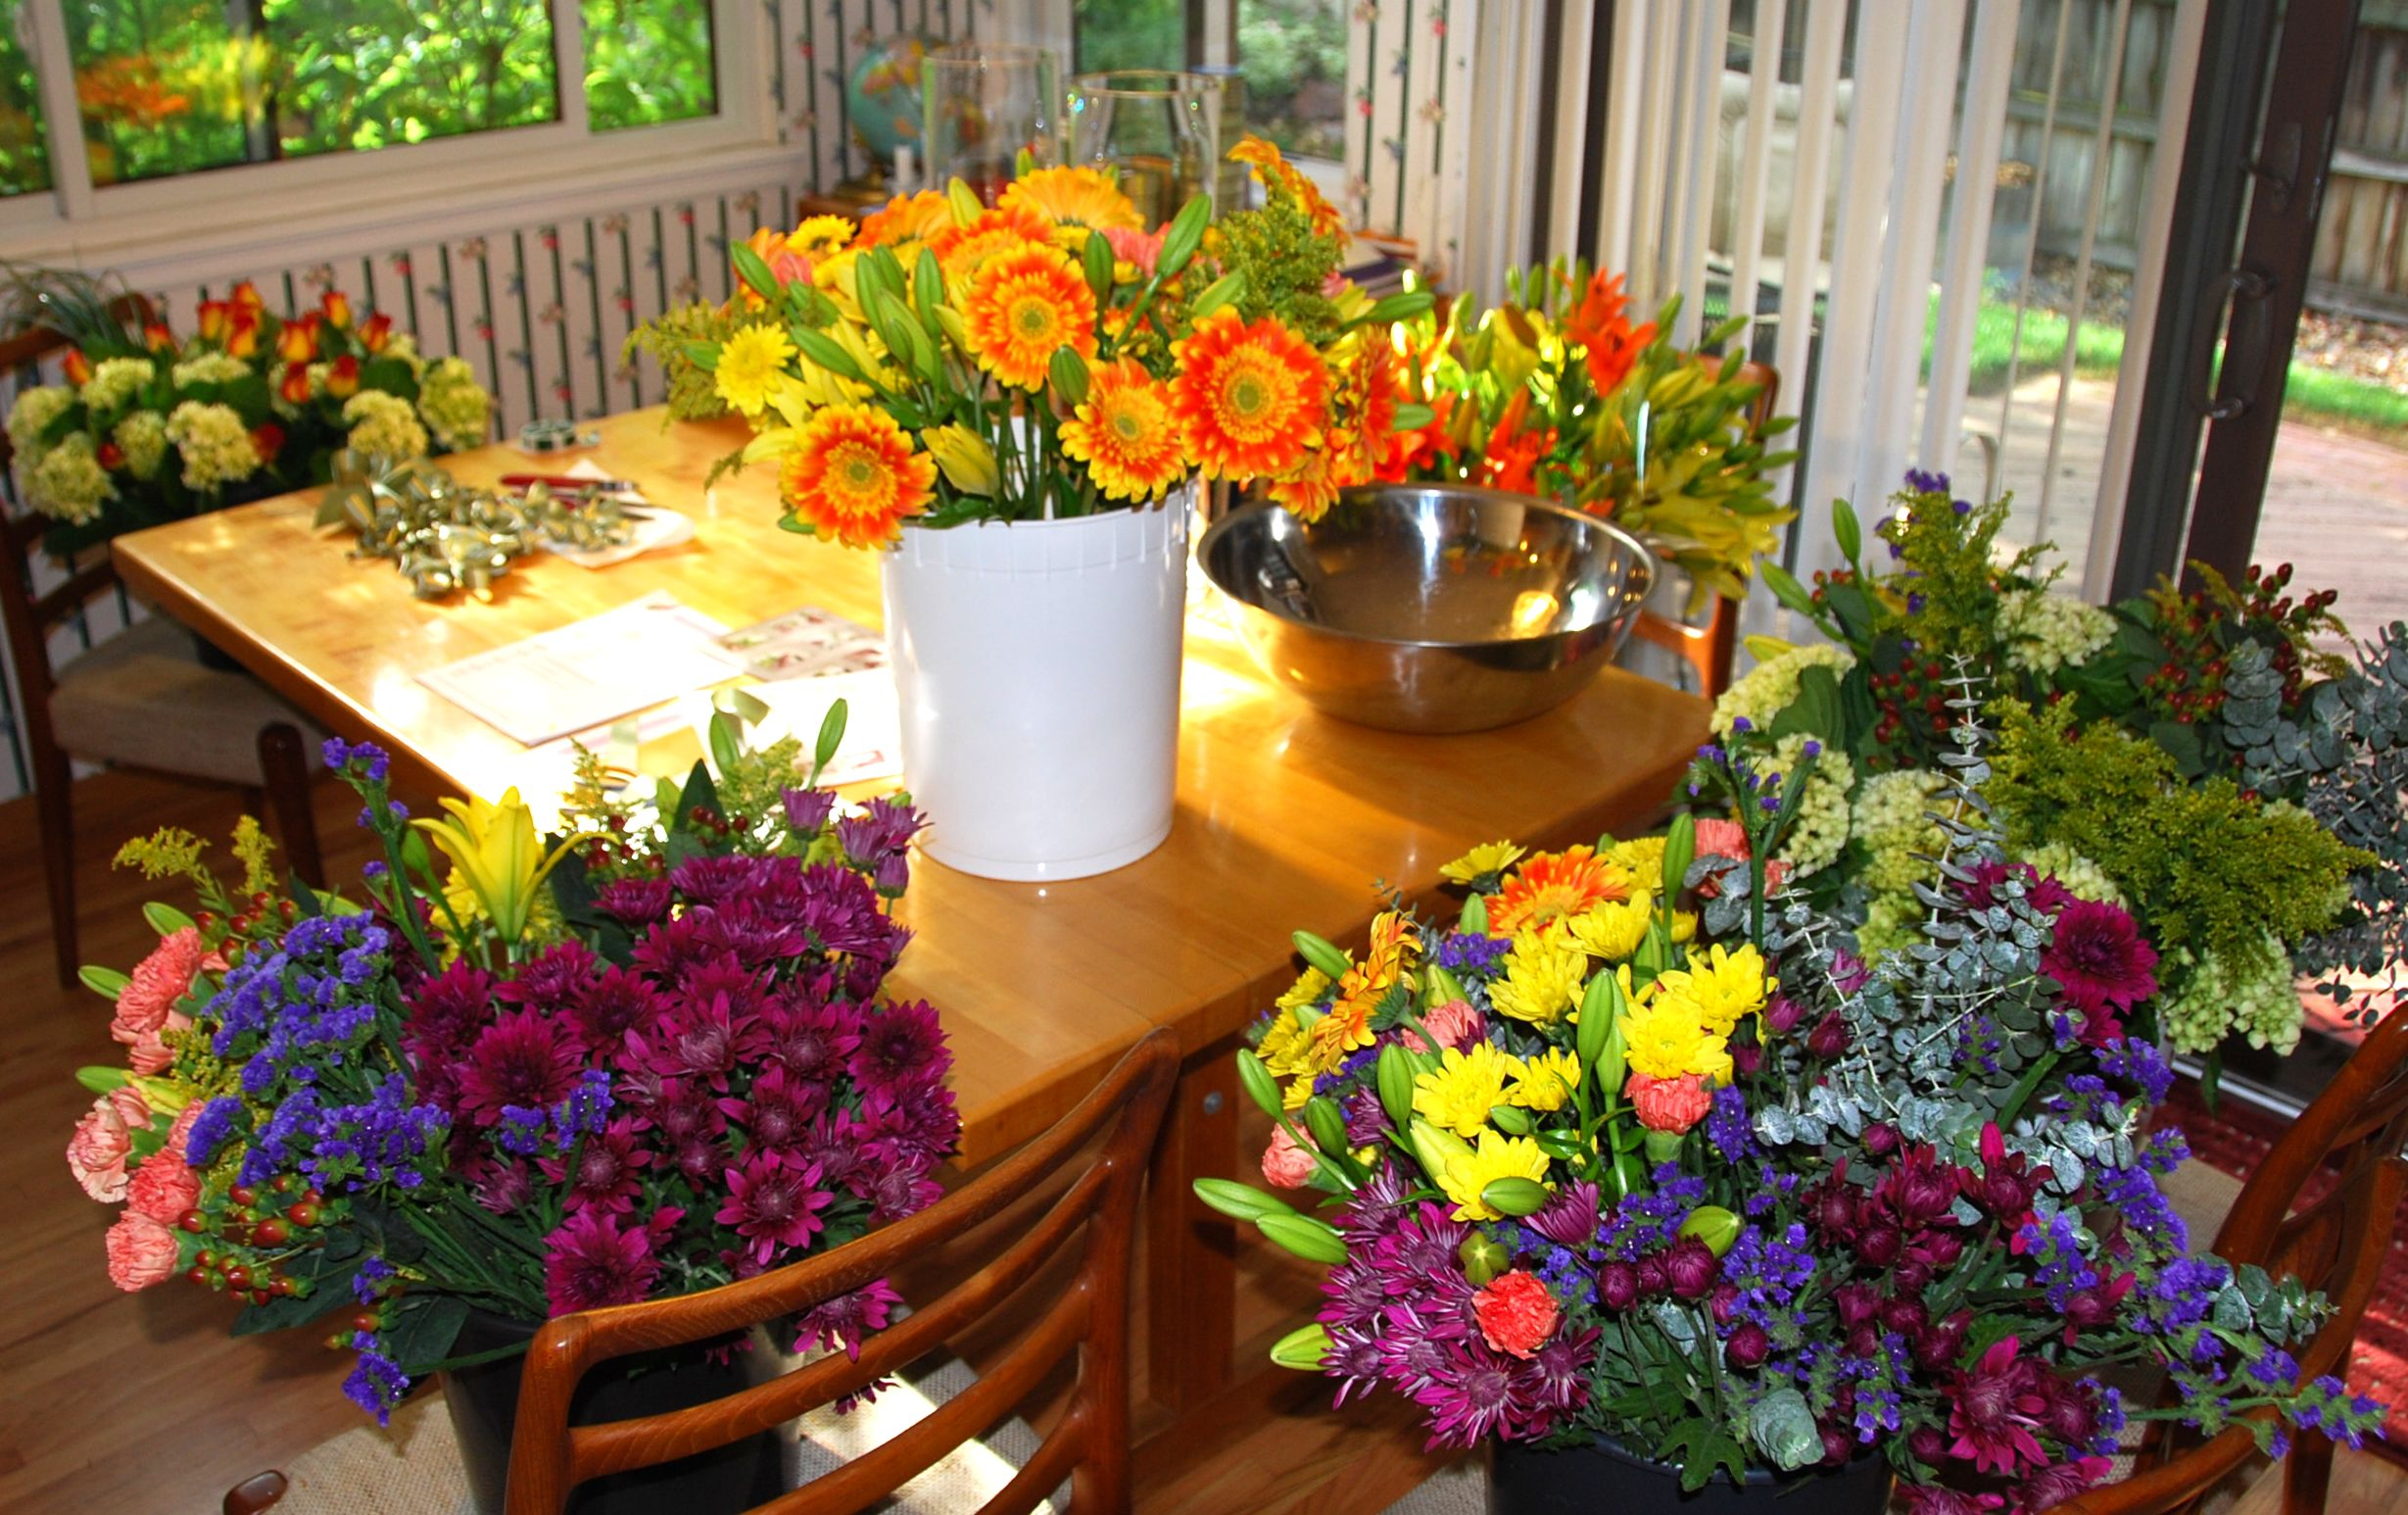 Gardening classes Fresh flowers Ellen Ashley Greensboro Learn